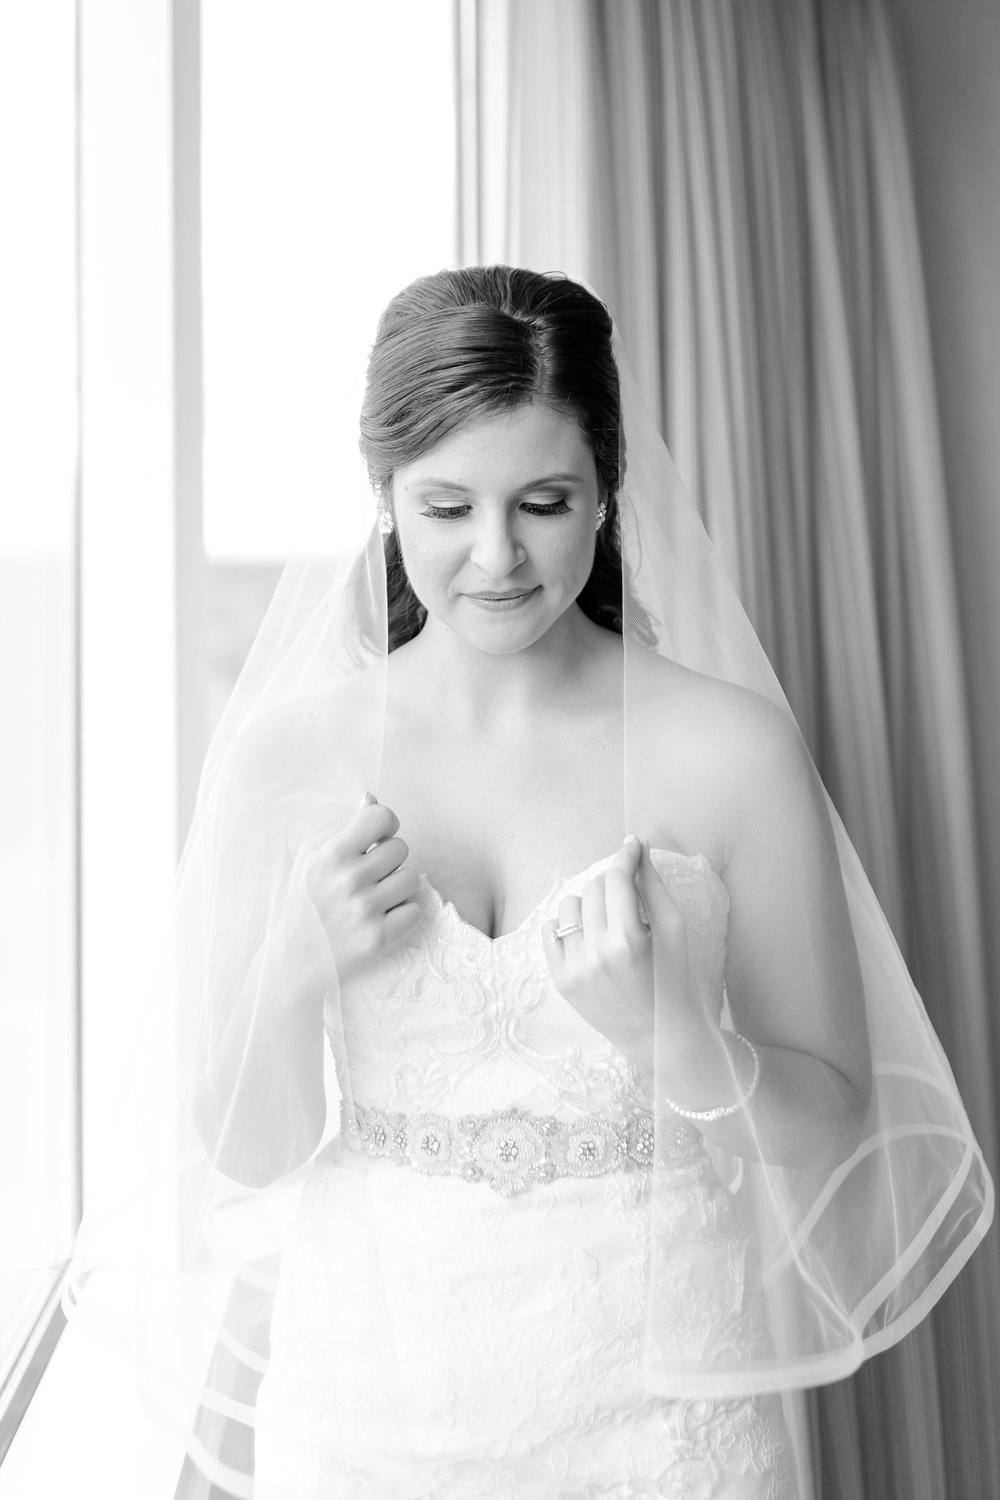 MacDonald 1. Getting Ready-219_anna grace photography leesburg virginia wedding photographer lansdowne resort wedding photo.jpg